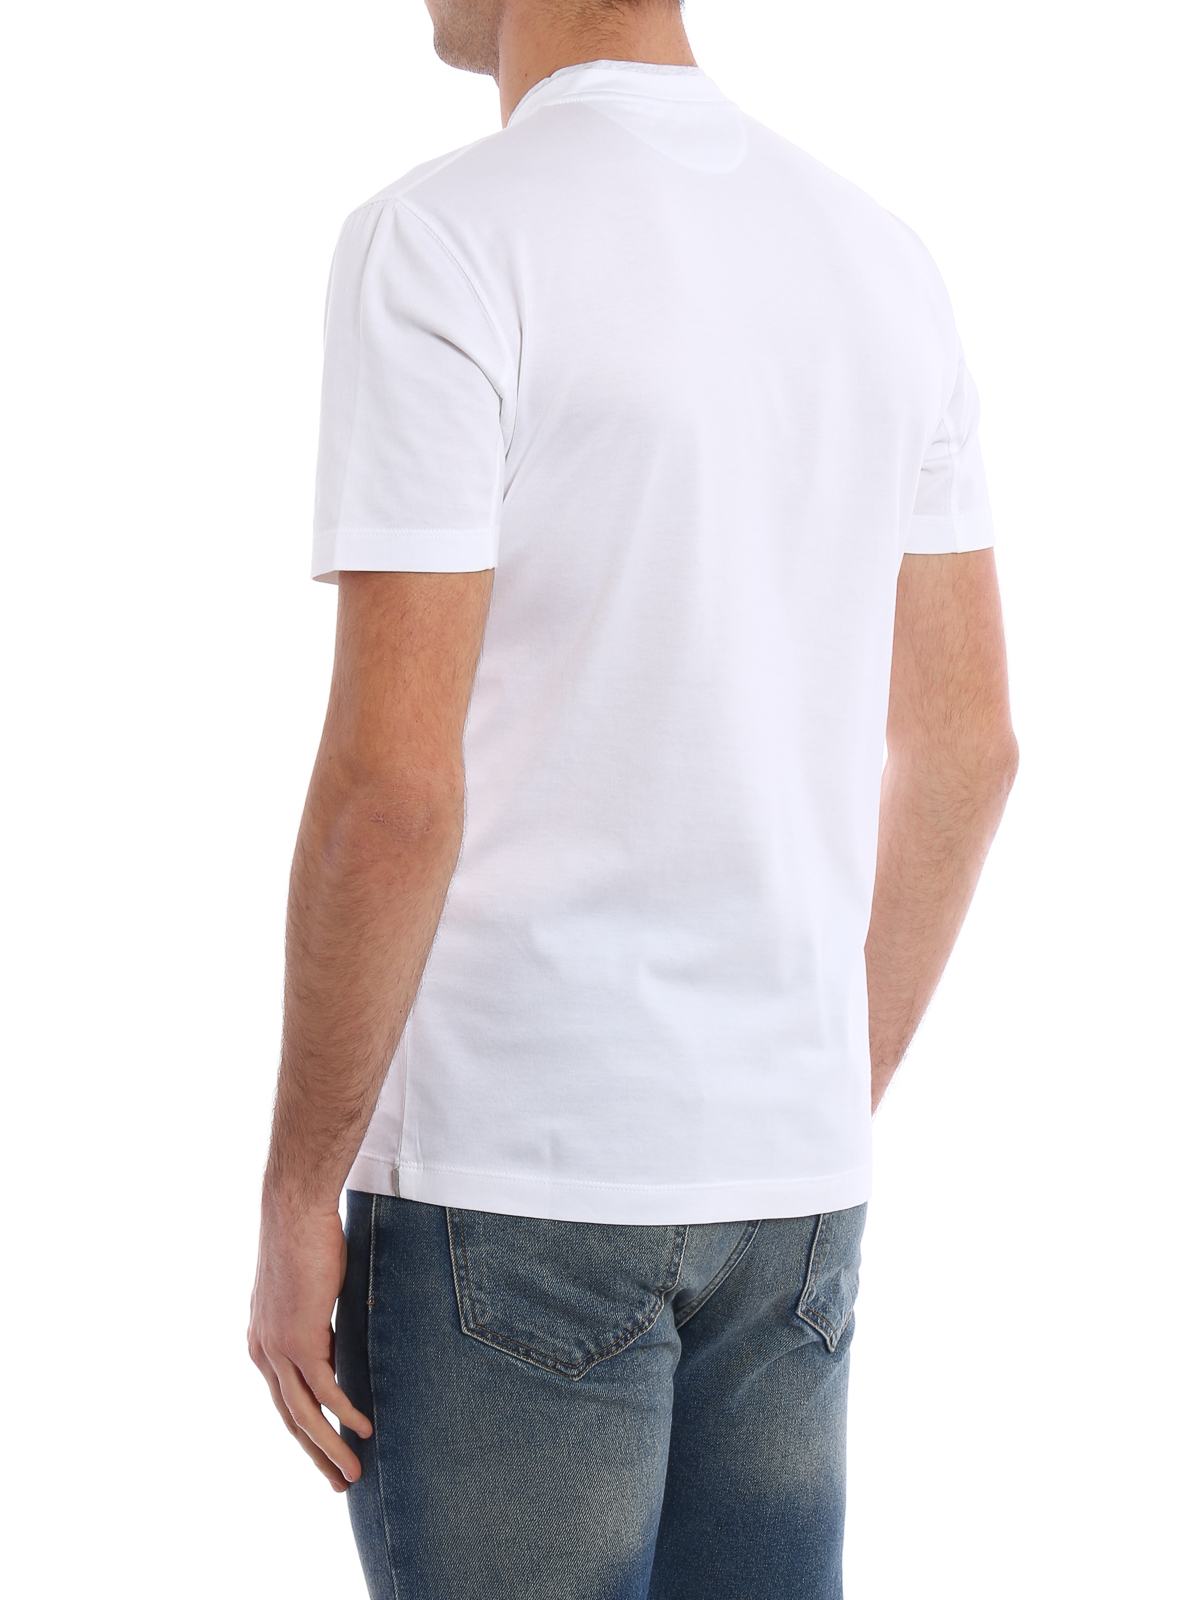 Layered v neck cotton t shirt by brunello cucinelli t for V neck t shirt online shopping